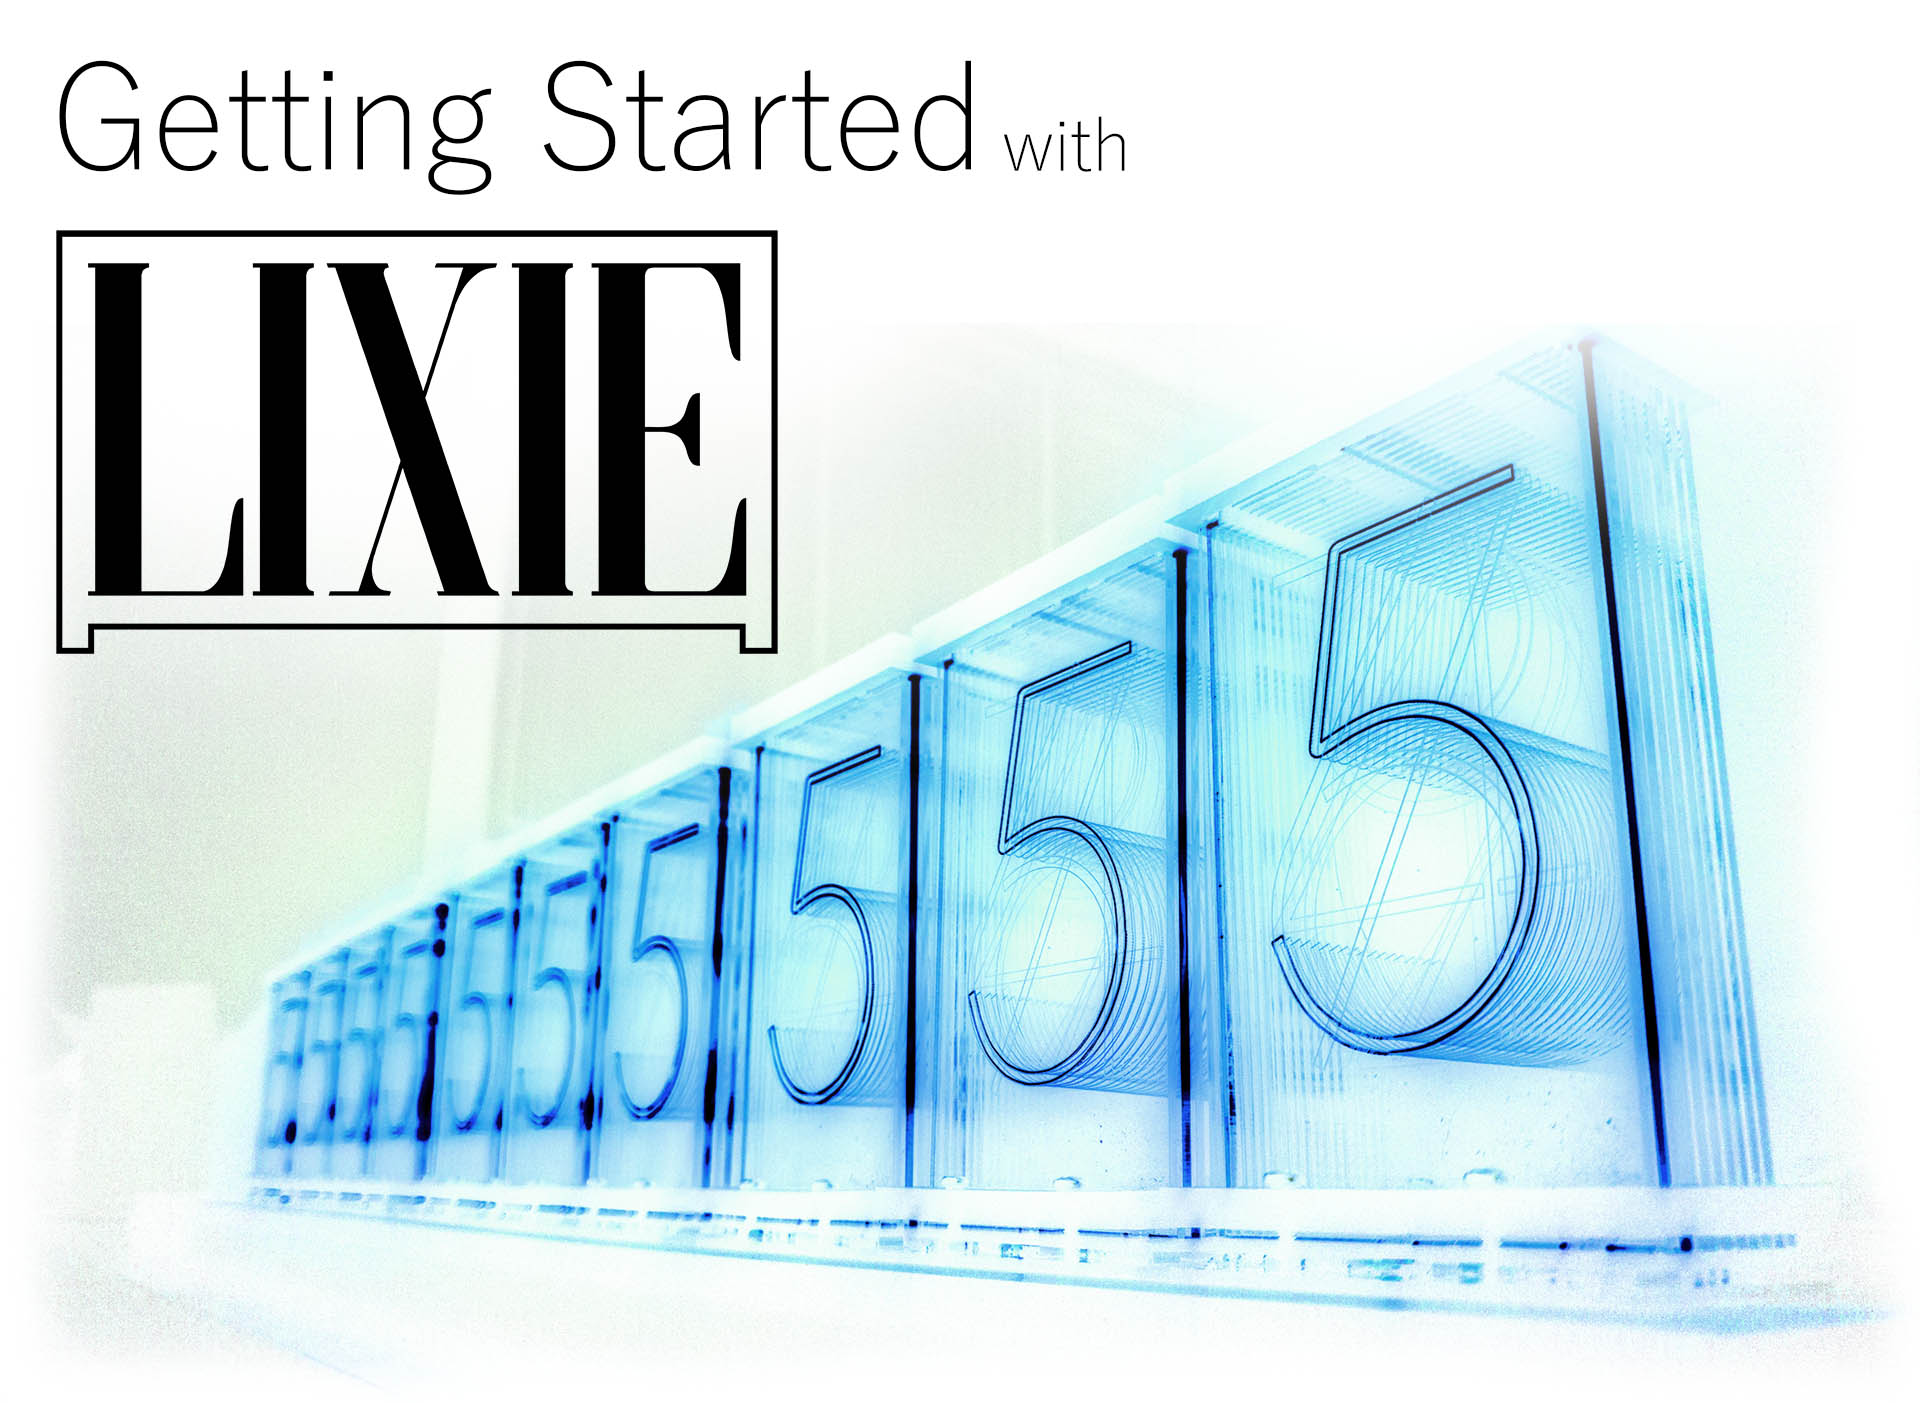 Lixie-arduino/getting-started md at master · connornishijima/Lixie